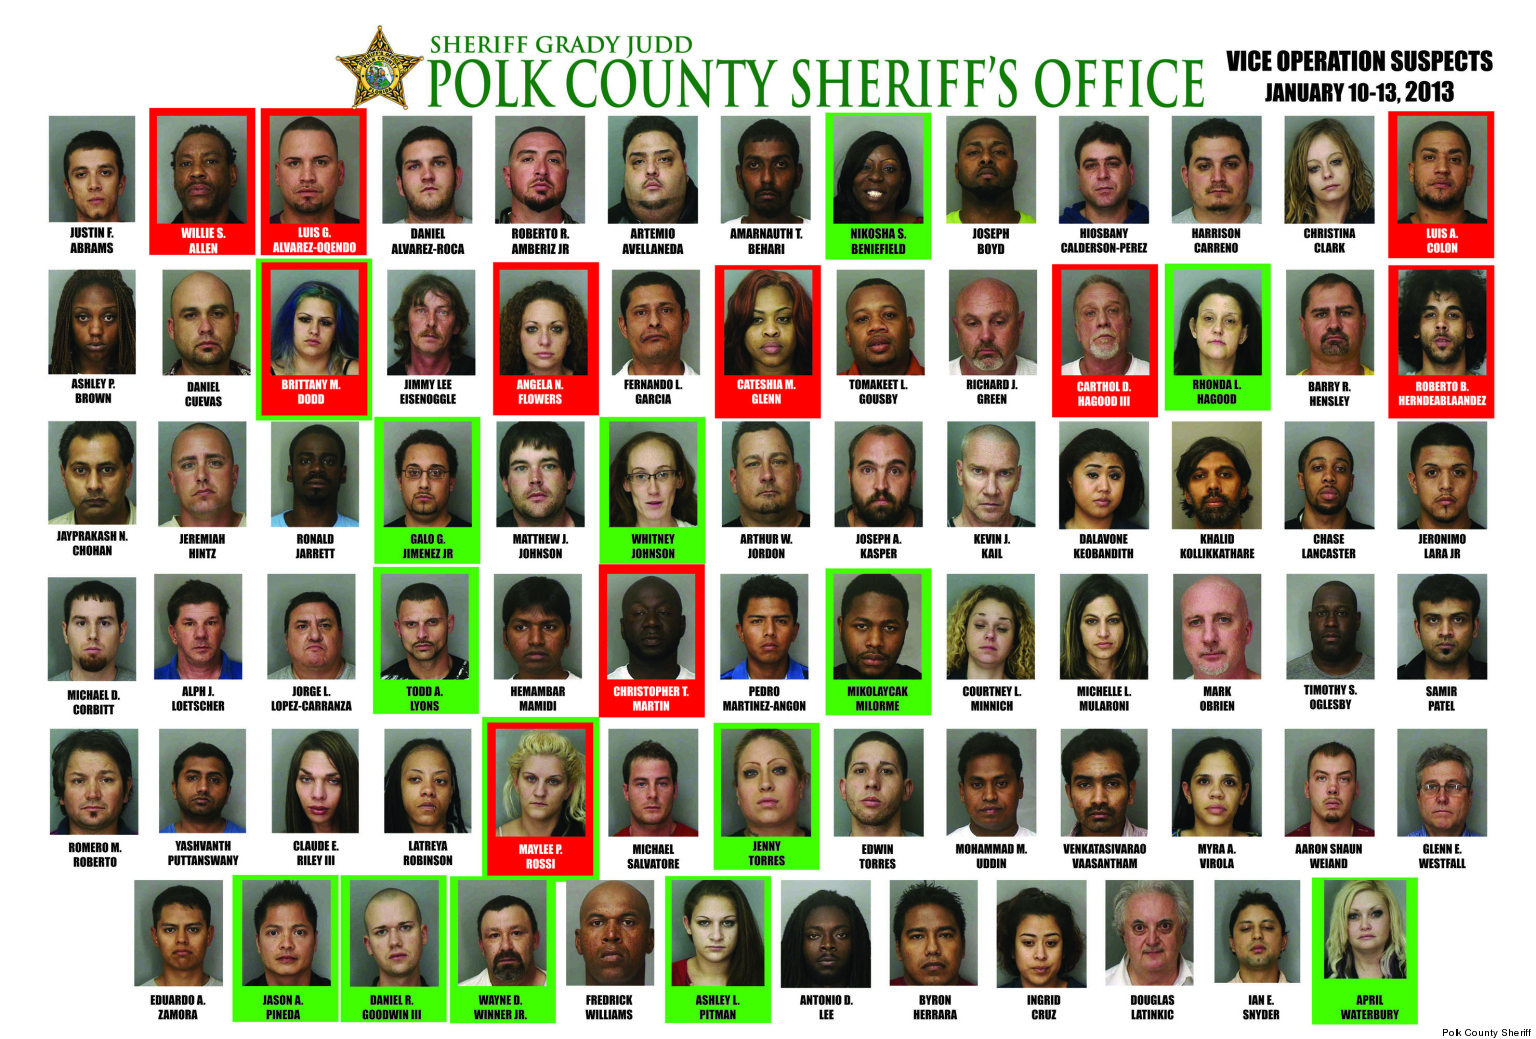 Peachy Prostitution Sting By Polk County Deputies Inflorida Huffpost Arrests Prostitution Sting By Polk County Central Jersey Backpage Review Central Jersey Backpage Arrests houzz-02 Central Jersey Backpage